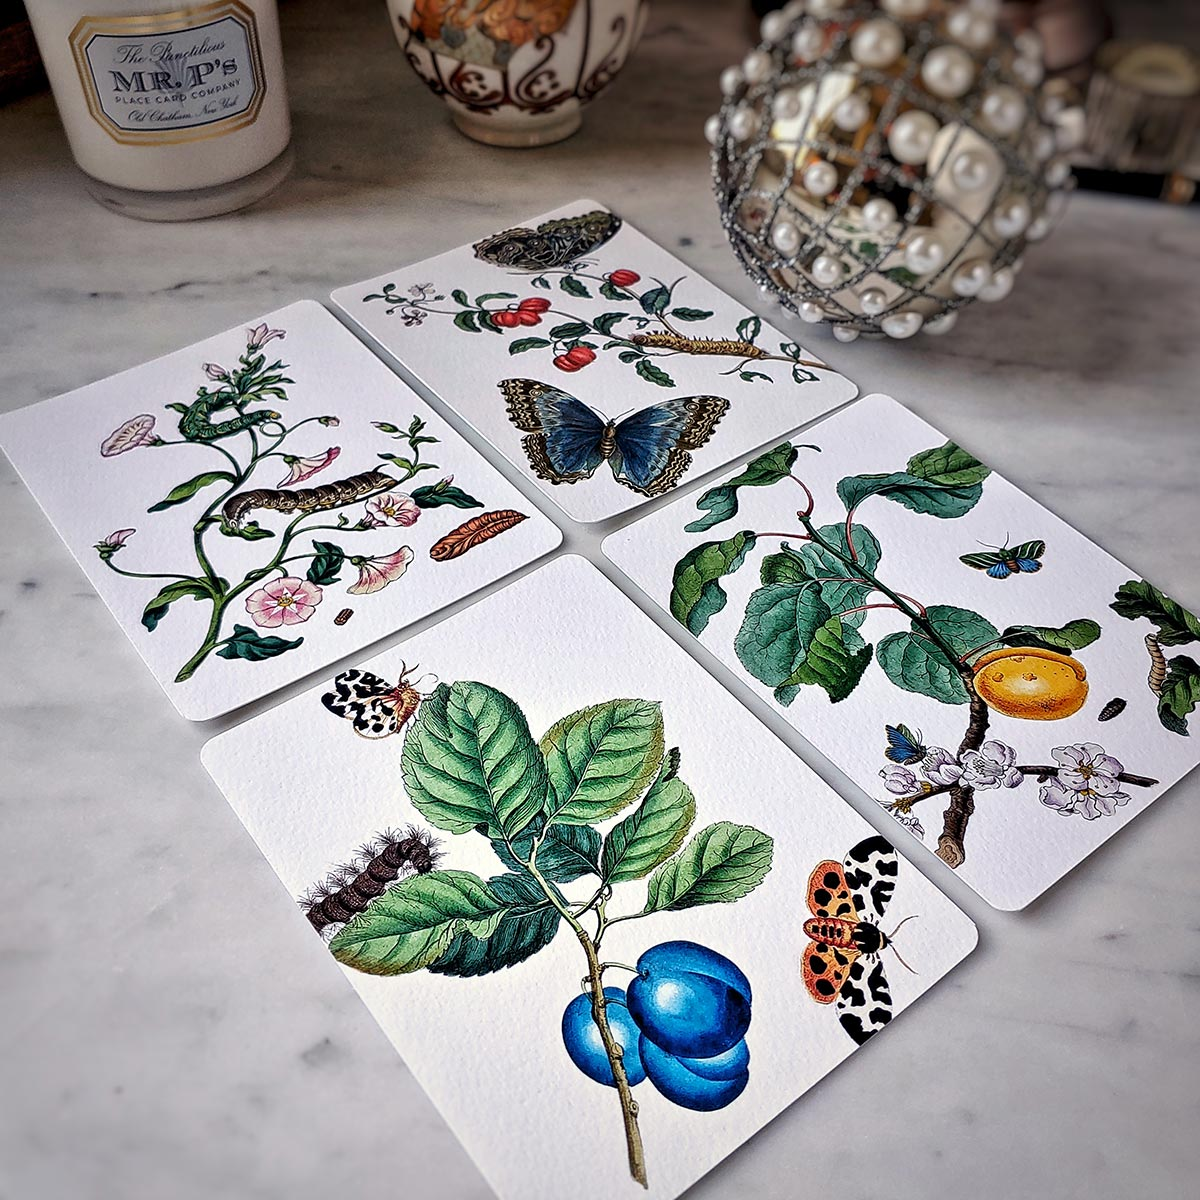 The Punctilious Mr. P's 'signs of spring' note card pack featuring all 4 cards with butterflies and fruit